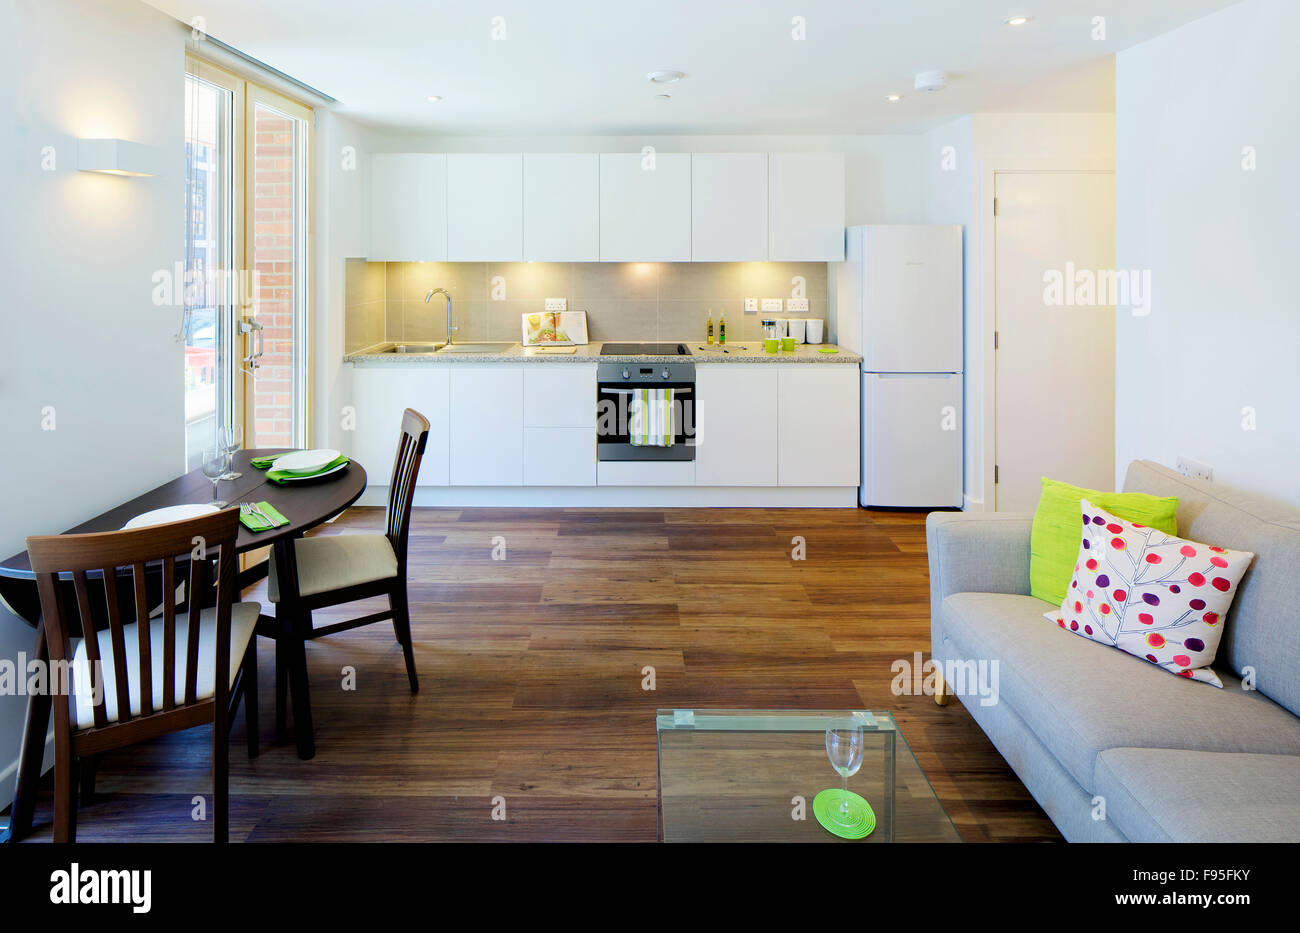 one church square london uk view of an open plan kitchen and living room modern interior white kitchen unit wood floors and furniture all in view - Living Room Church